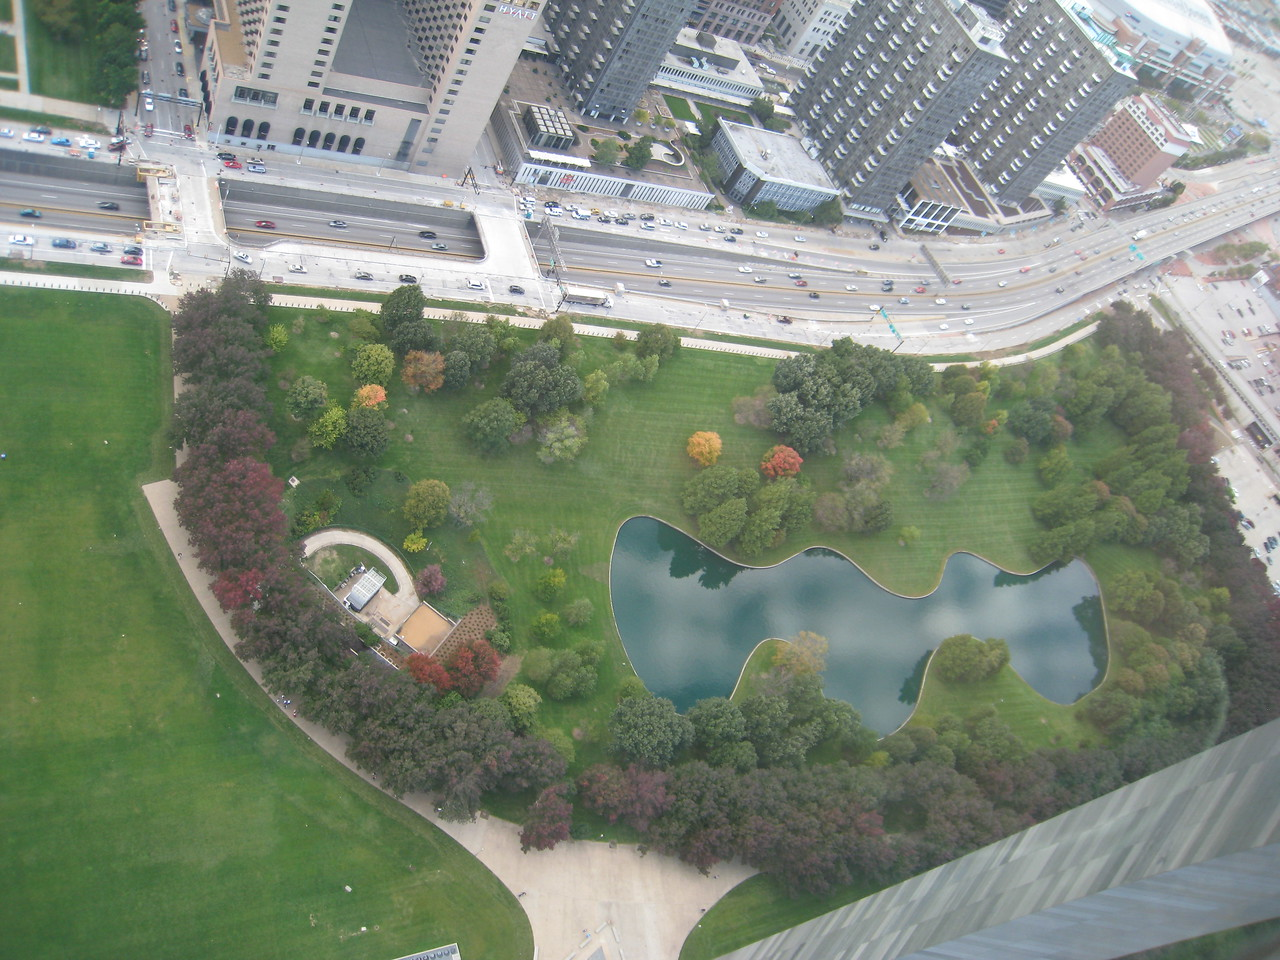 View of the park between the arch and downtown St. Louis